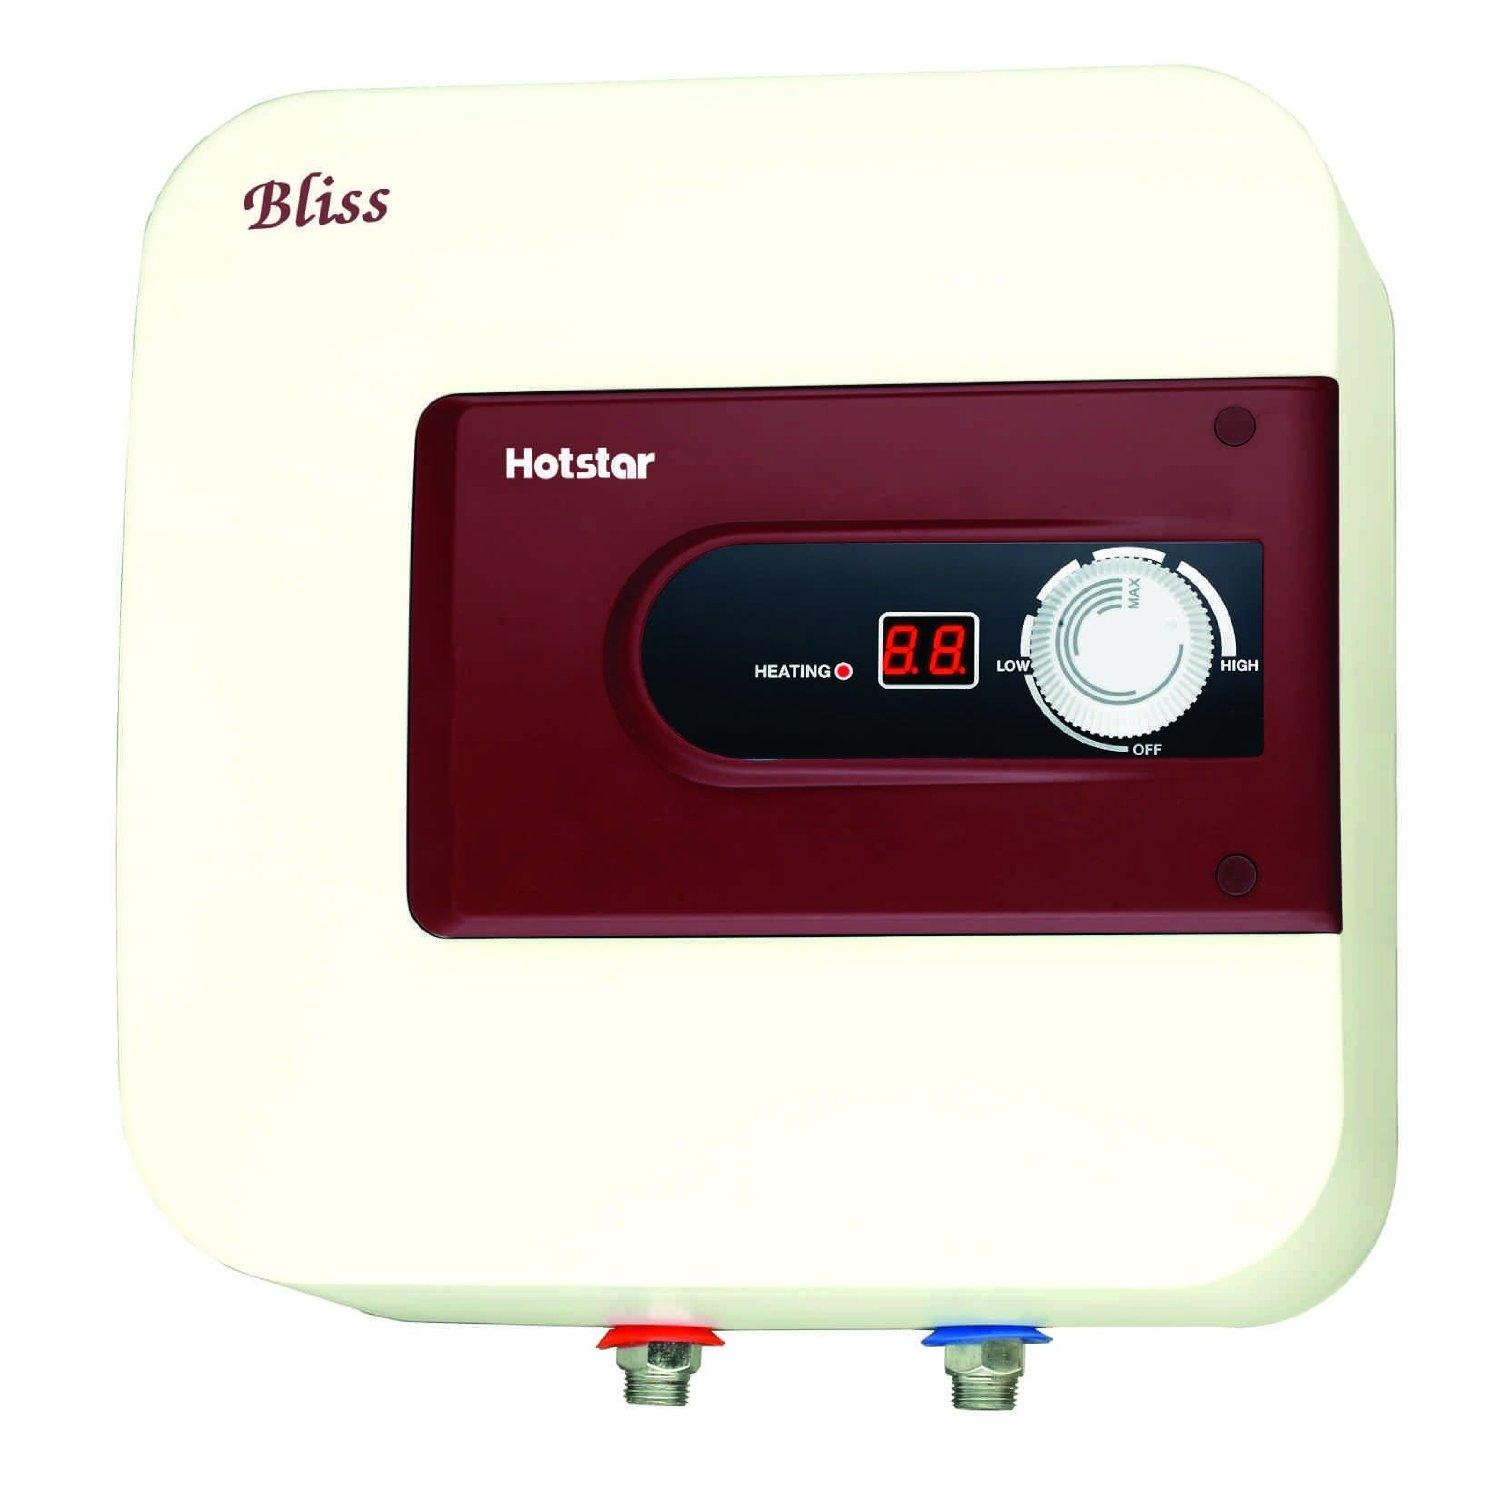 Hotstar Bliss 25 Ltr Digital Electric Storage Water Heater Price In Ao Smith Hse Sas 10 India Coupons And Specifications Amex